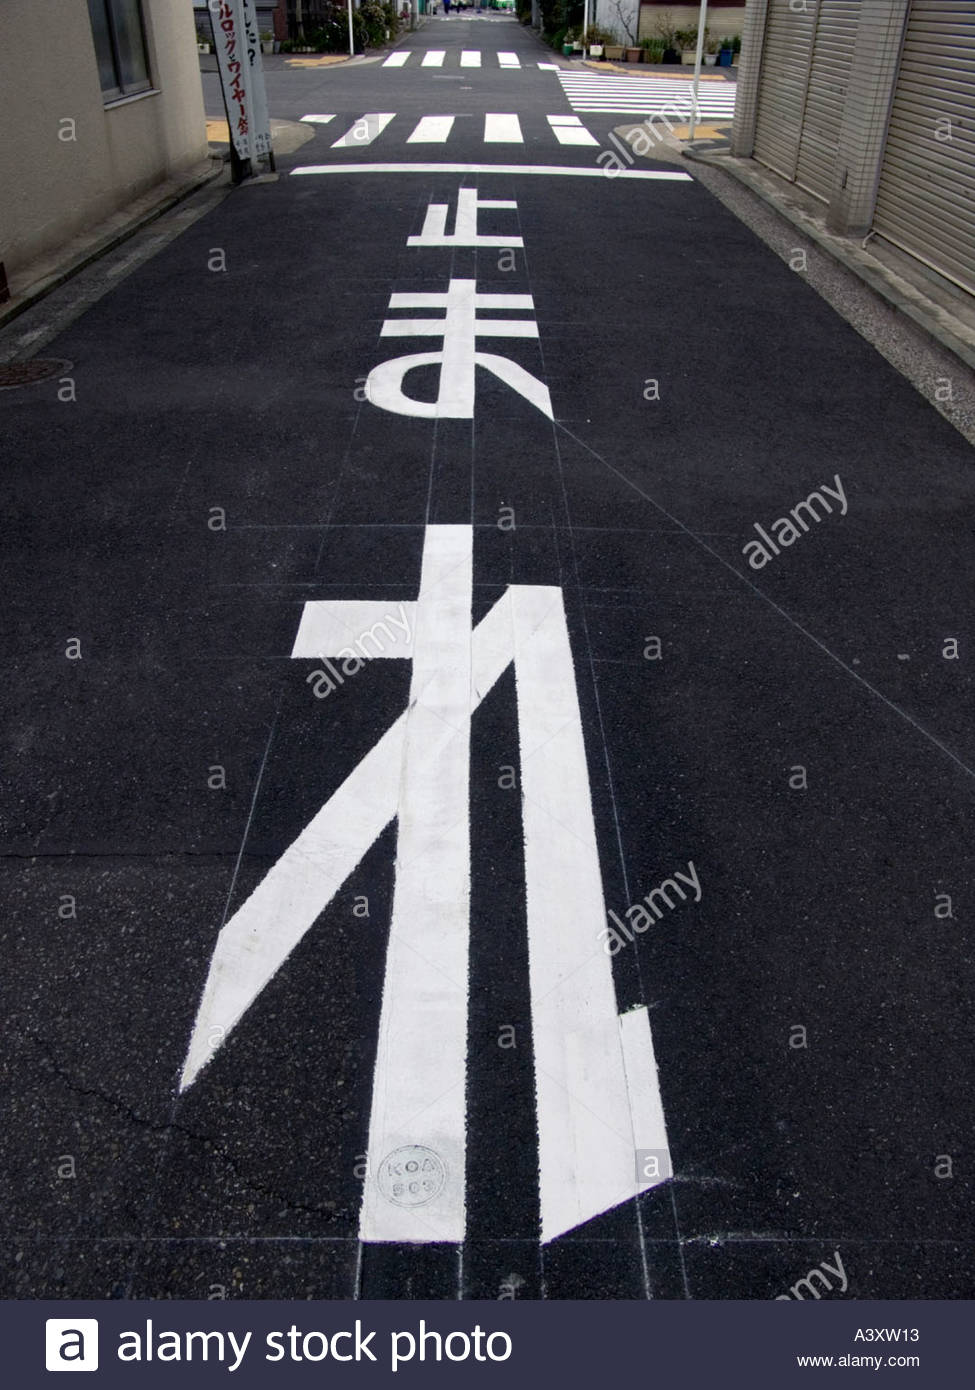 ea5636cec46 Japan STOP traffic sign freshly painted on the road Stock Photo ...